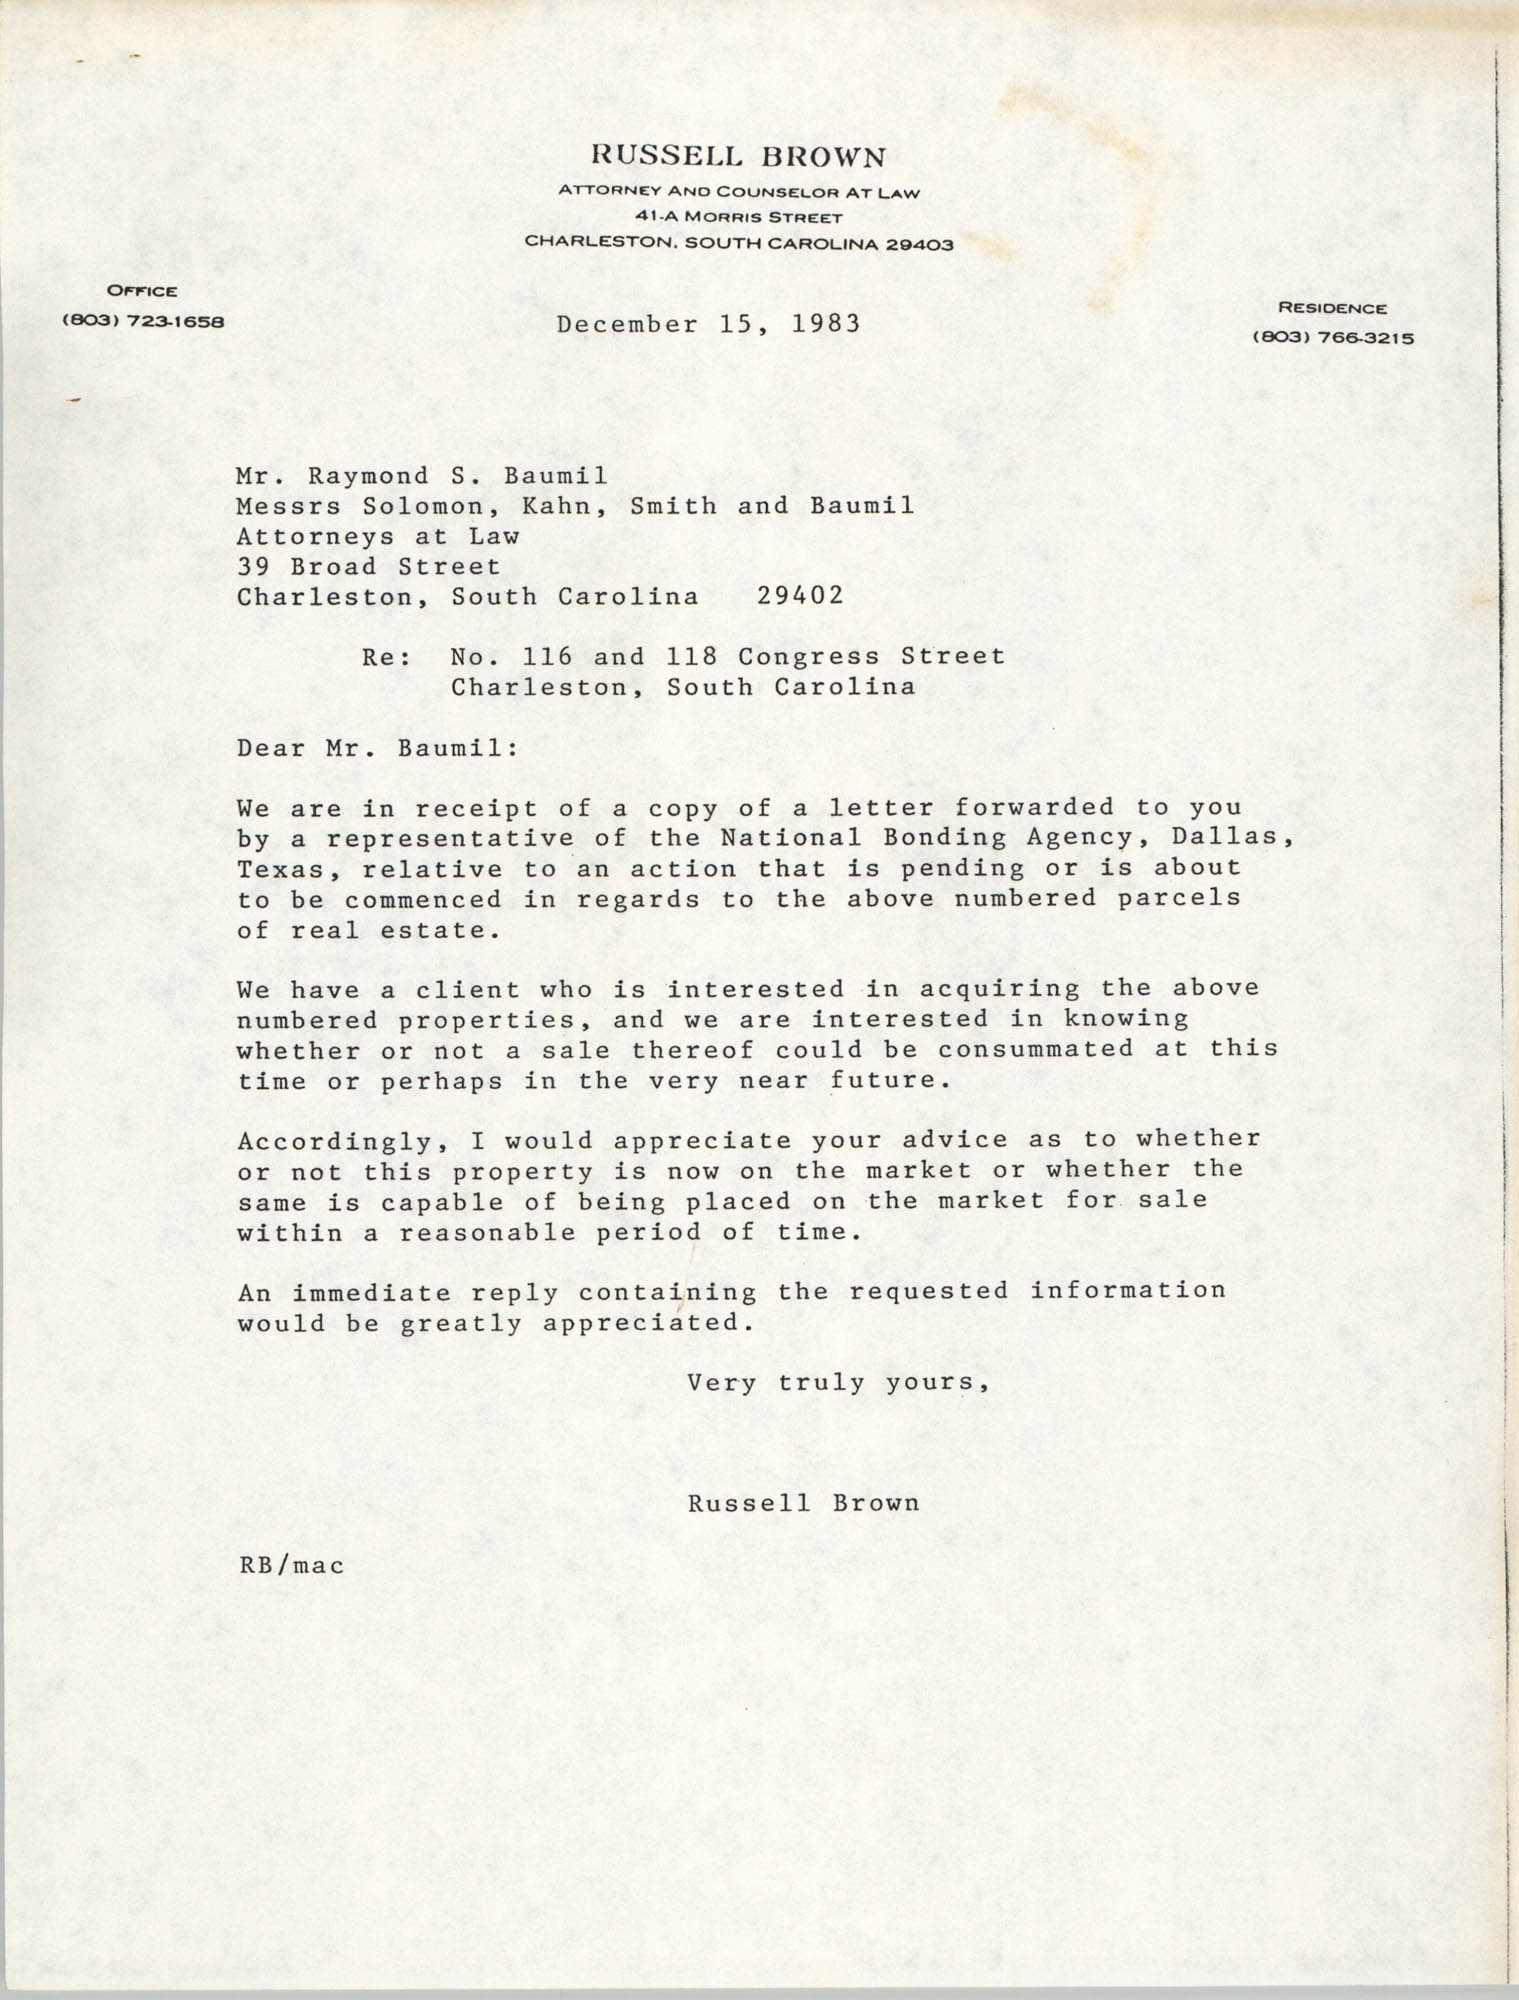 Letter from Russell Brown to Raymond S. Baumil, December 15, 1983